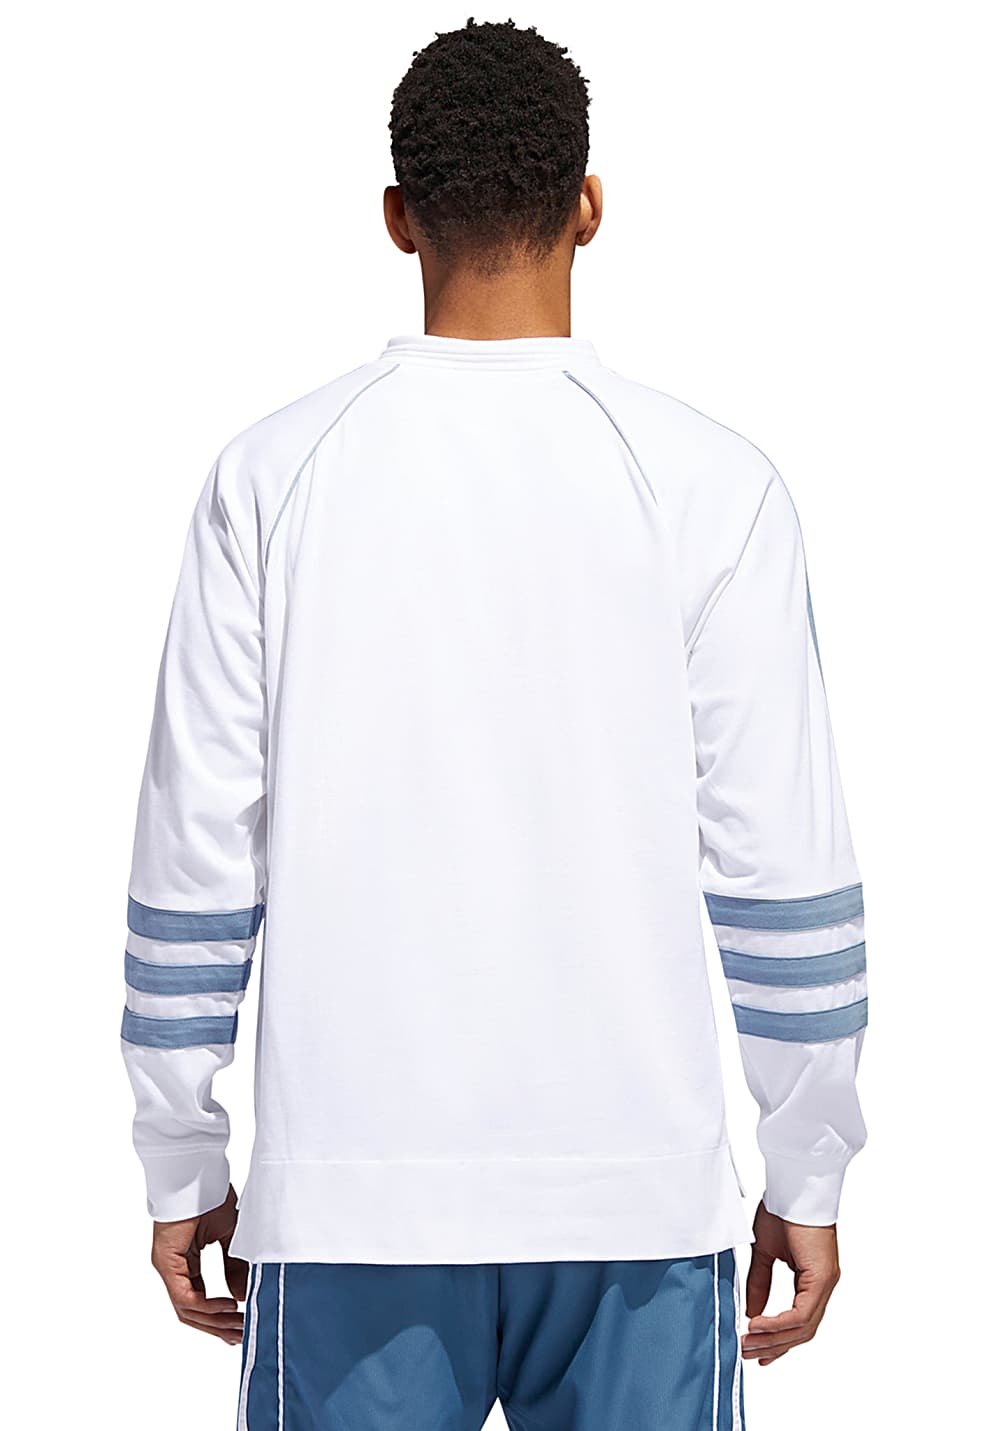 e954a864972 ADIDAS ORIGINALS Auth Rugby - Outerwear for Men - White - Planet Sports